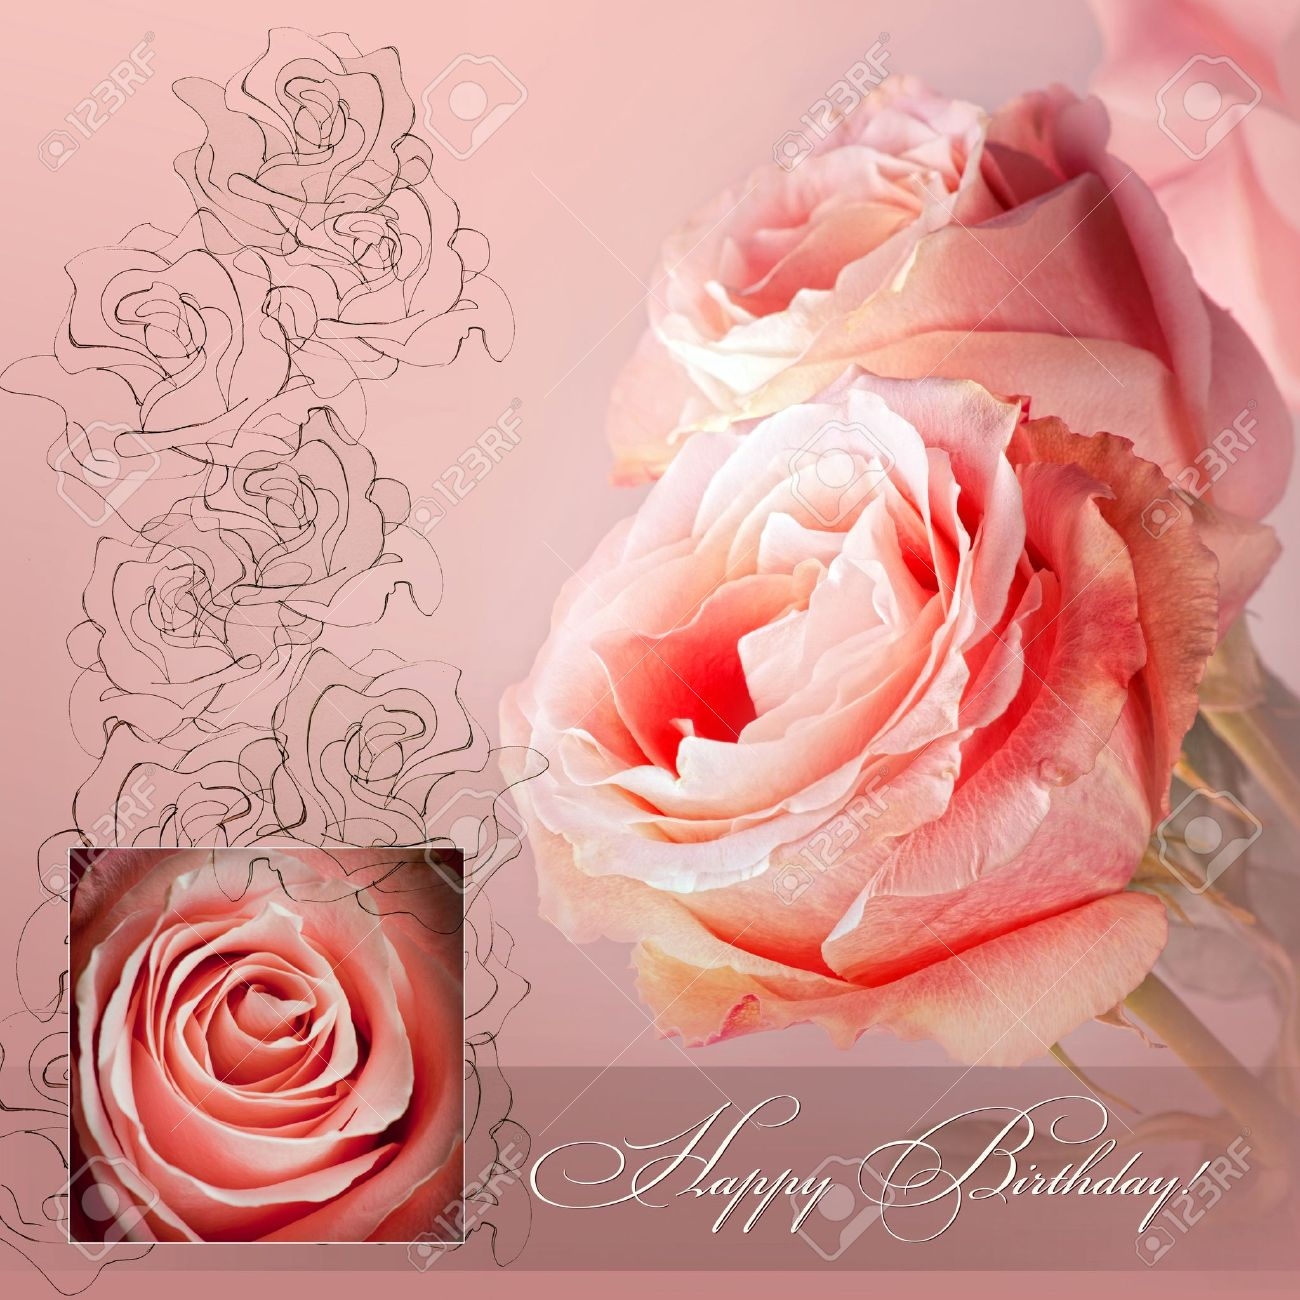 Happy Birthday Greetings With Pink Roses Photo Picture And – Birthday Greetings with Roses